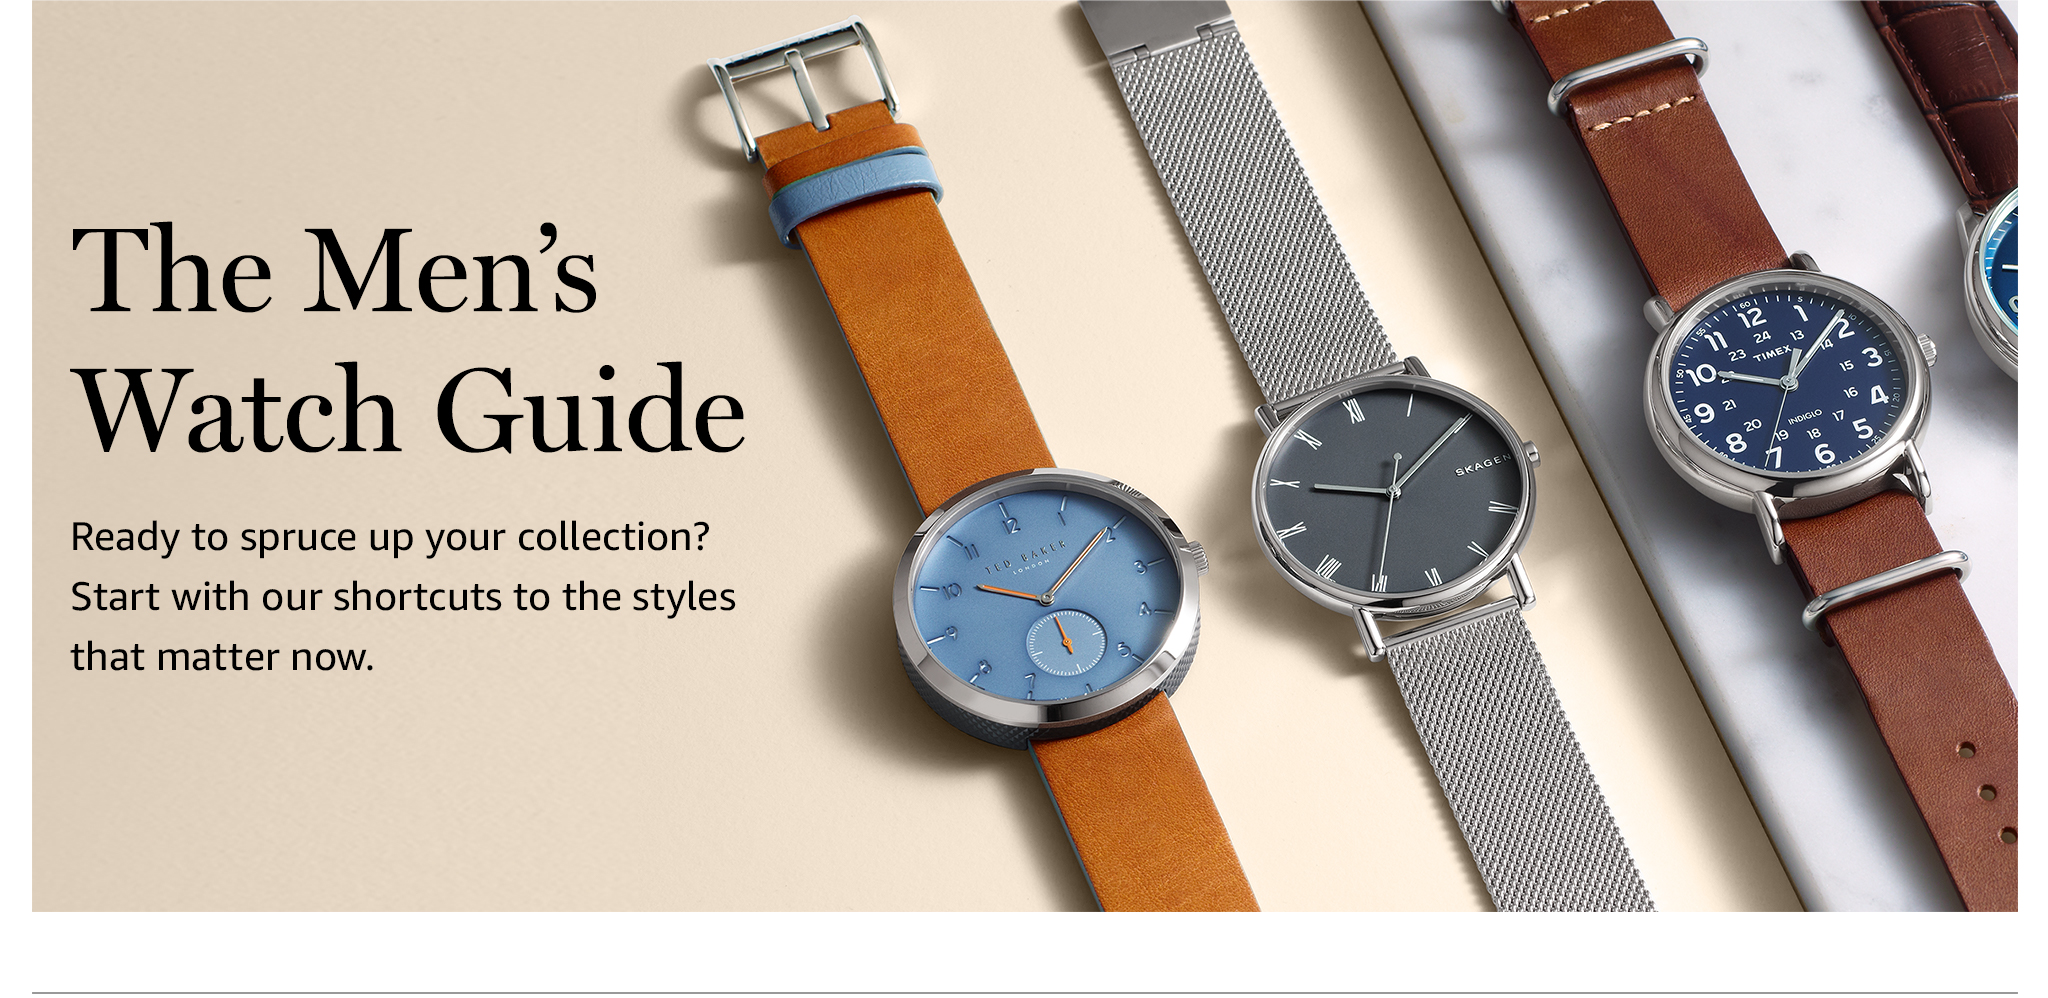 The Men's Watch Guide